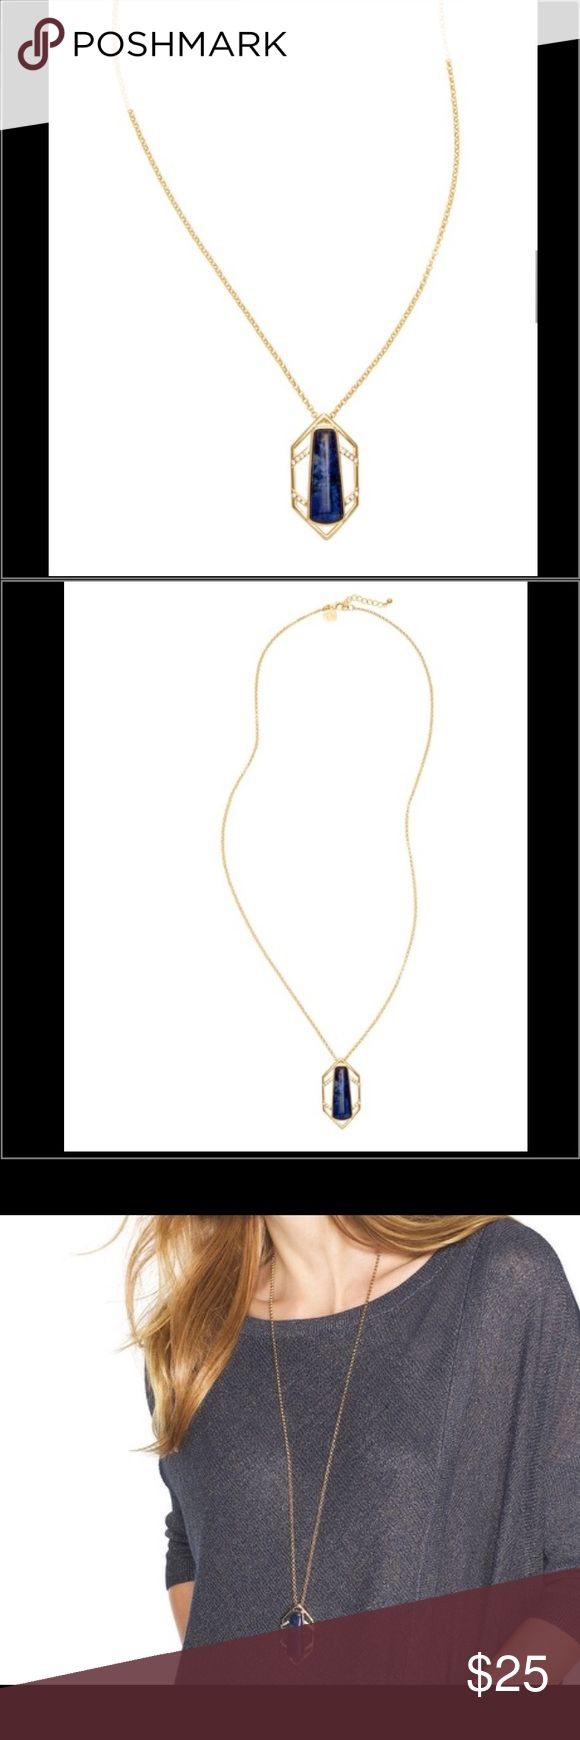 """BRAND NEW WHBM SODALITE CHEVRON PENDANT NECKLACE BRAND NEW NEVER WORN A sculptural design surrounds the angular blue sodalite suspended by a long, gilded chain. Breathtaking pavé accents it for a glamorous caged effect. Sodalite chevron long pendant necklace Approx. 36"""" overall length with 2"""" extender; signature WHBM charm Lobster close; goldtone; semi-precious sodalite; glass stones Handcrafted with nickel-free and lead-free metal. White House Black Market Accessories"""